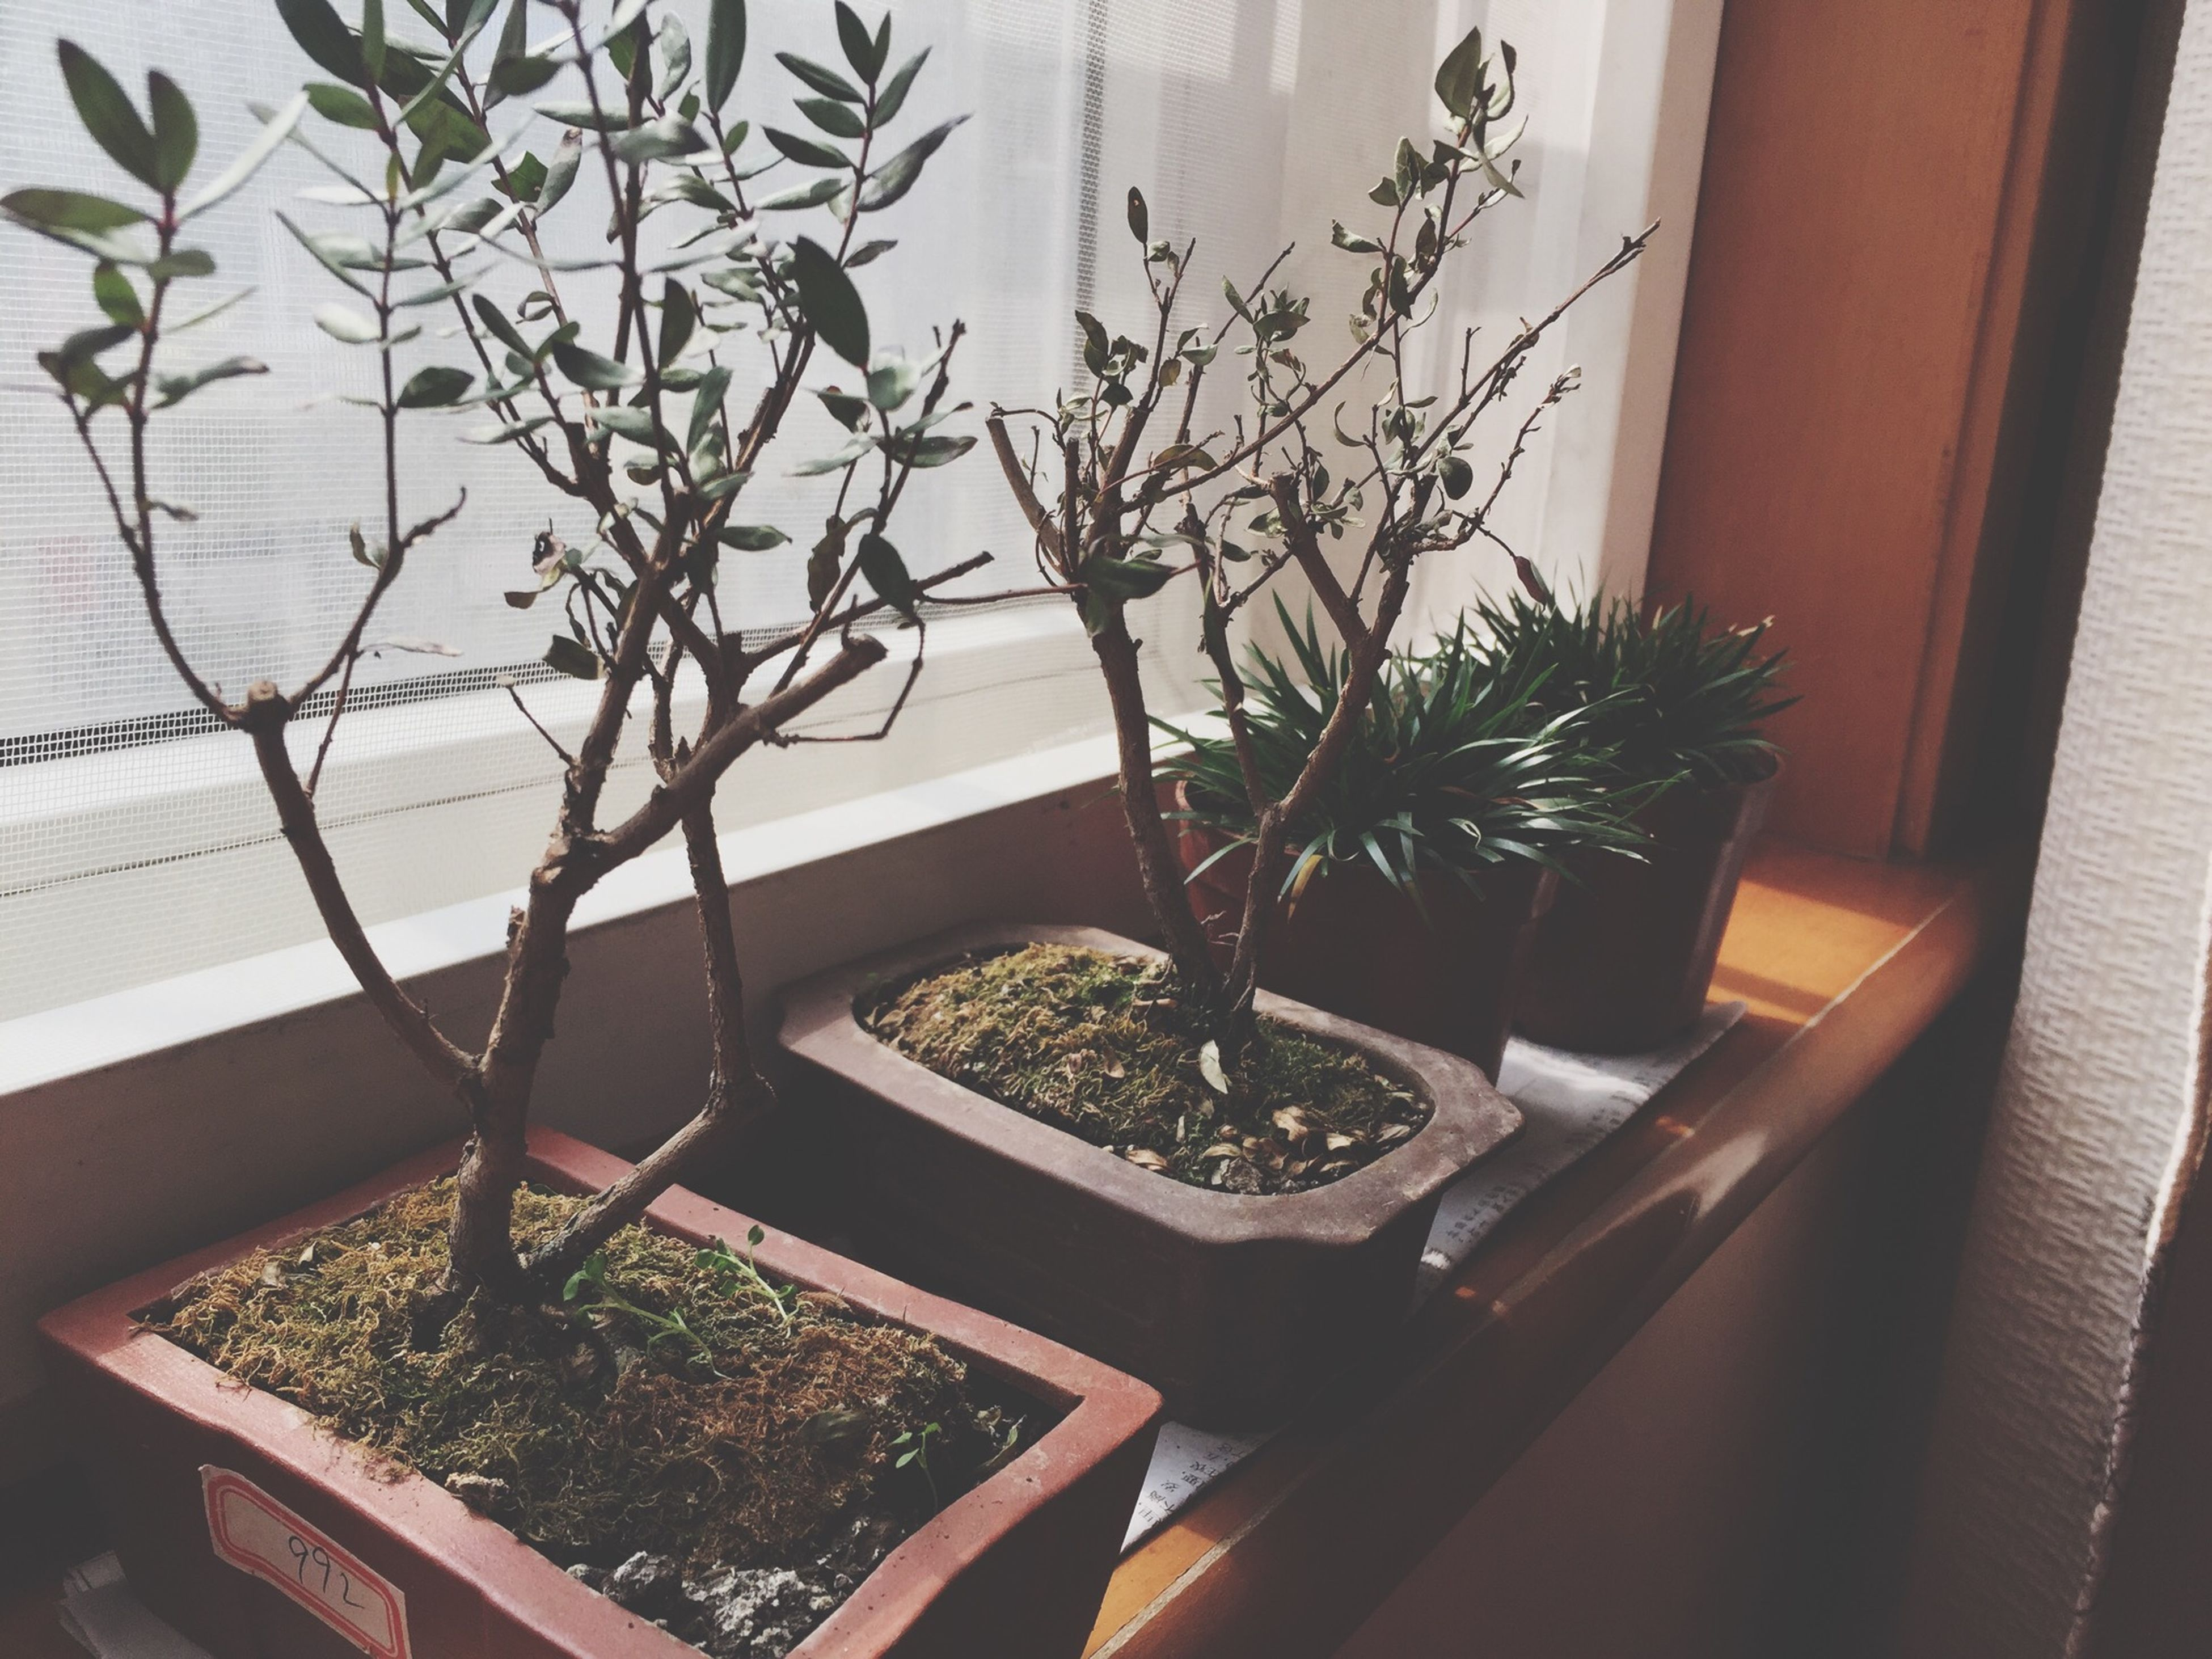 potted plant, indoors, plant, window, growth, table, leaf, house, built structure, window sill, architecture, home interior, pot plant, glass - material, flower pot, no people, day, nature, flower, transparent